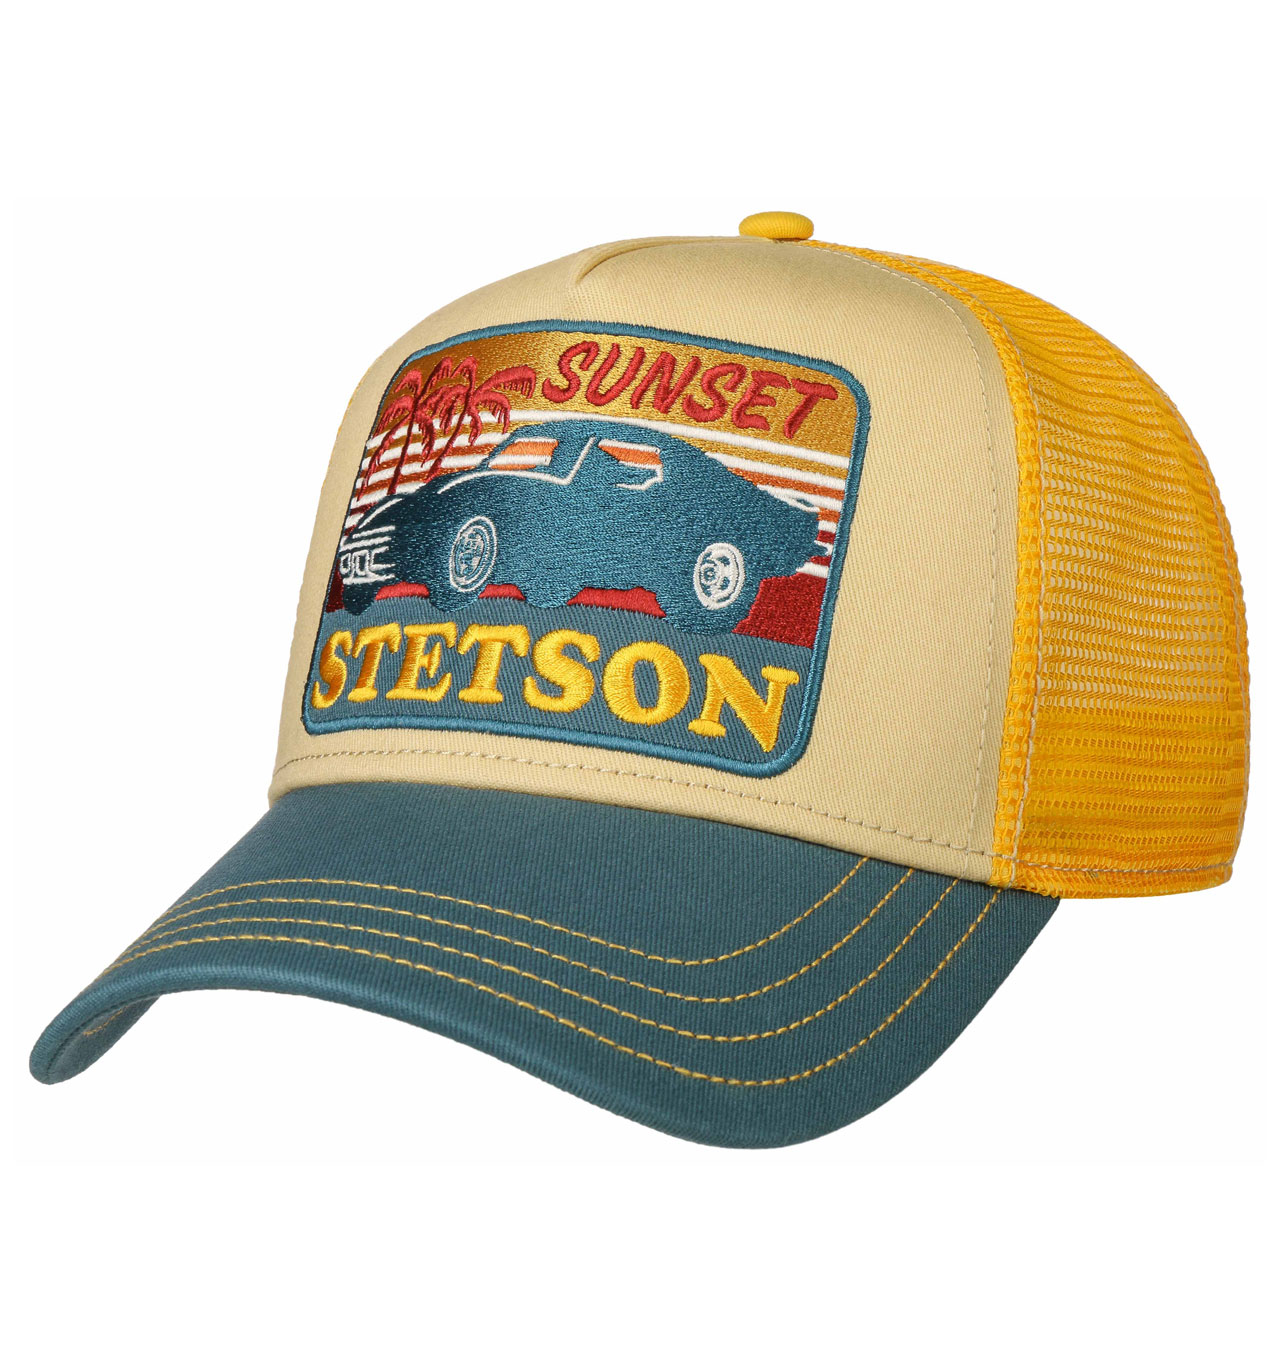 Stetson Trucker Cap Sunset